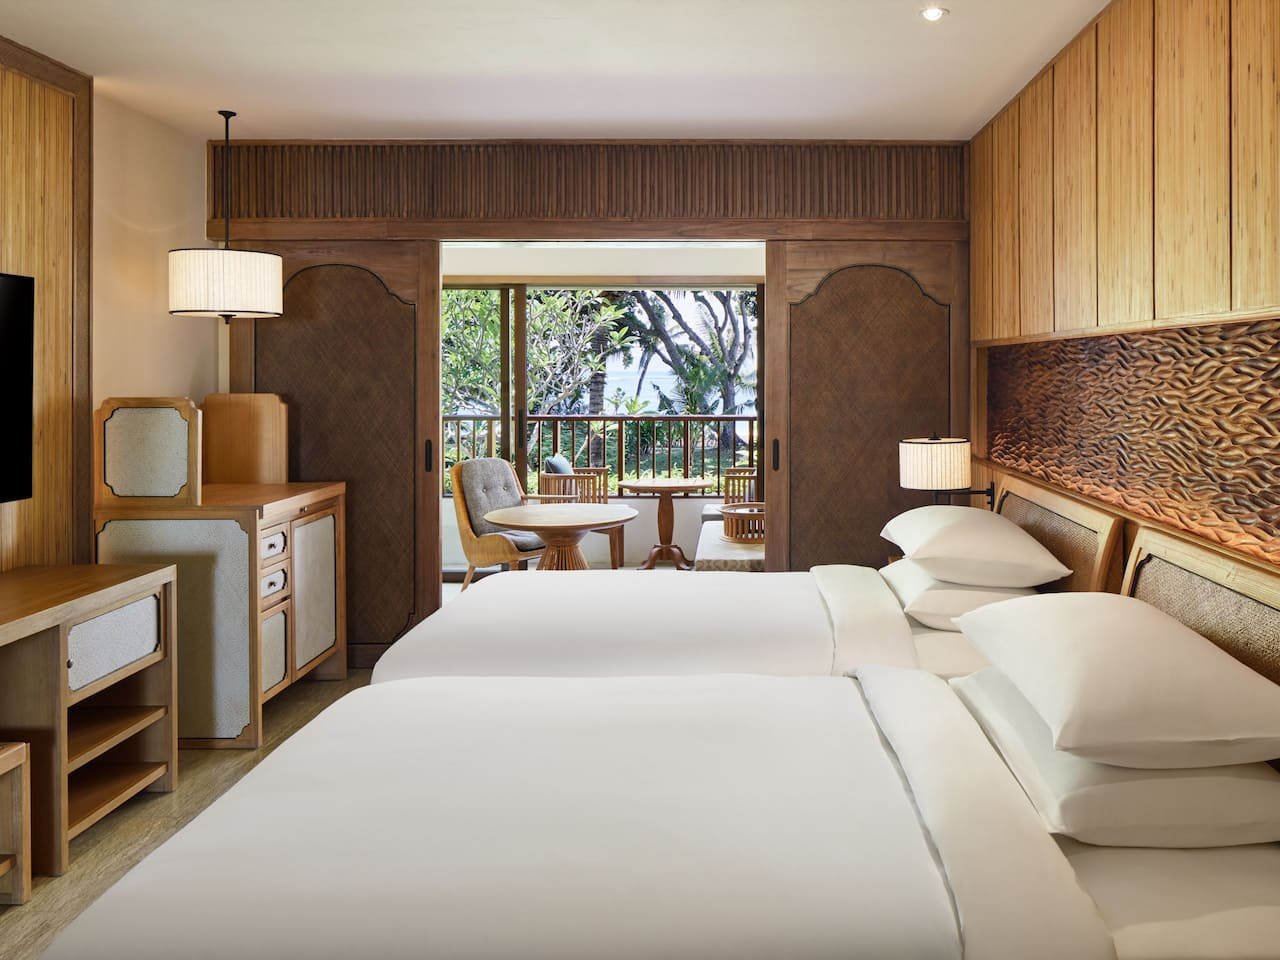 2 Twin Beds Deluxe Room The Hyatt Regency Resort Bali